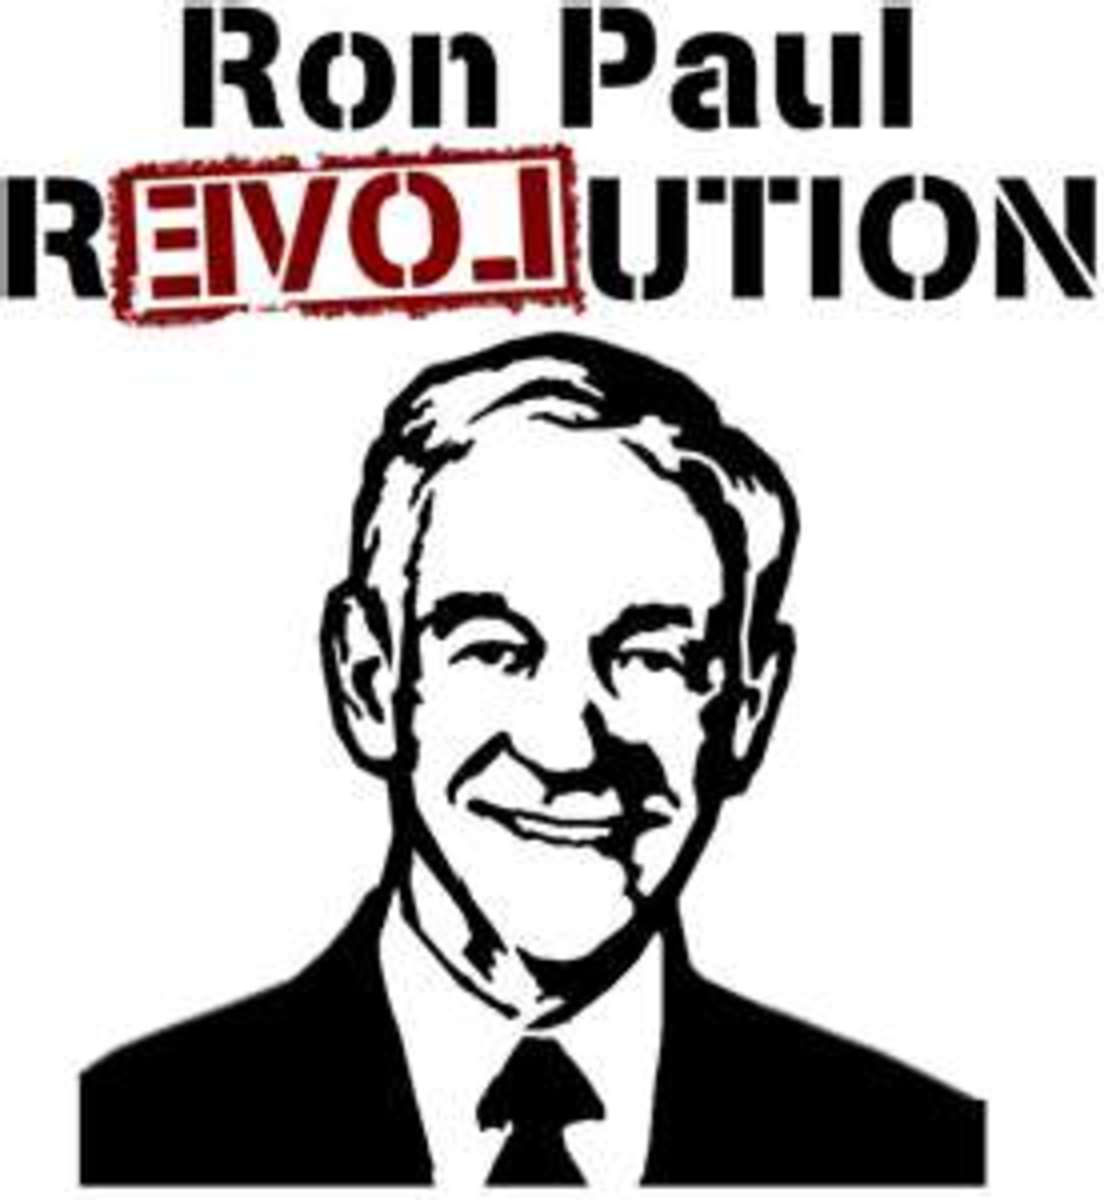 Why I Would Vote For Ron Paul in 2012